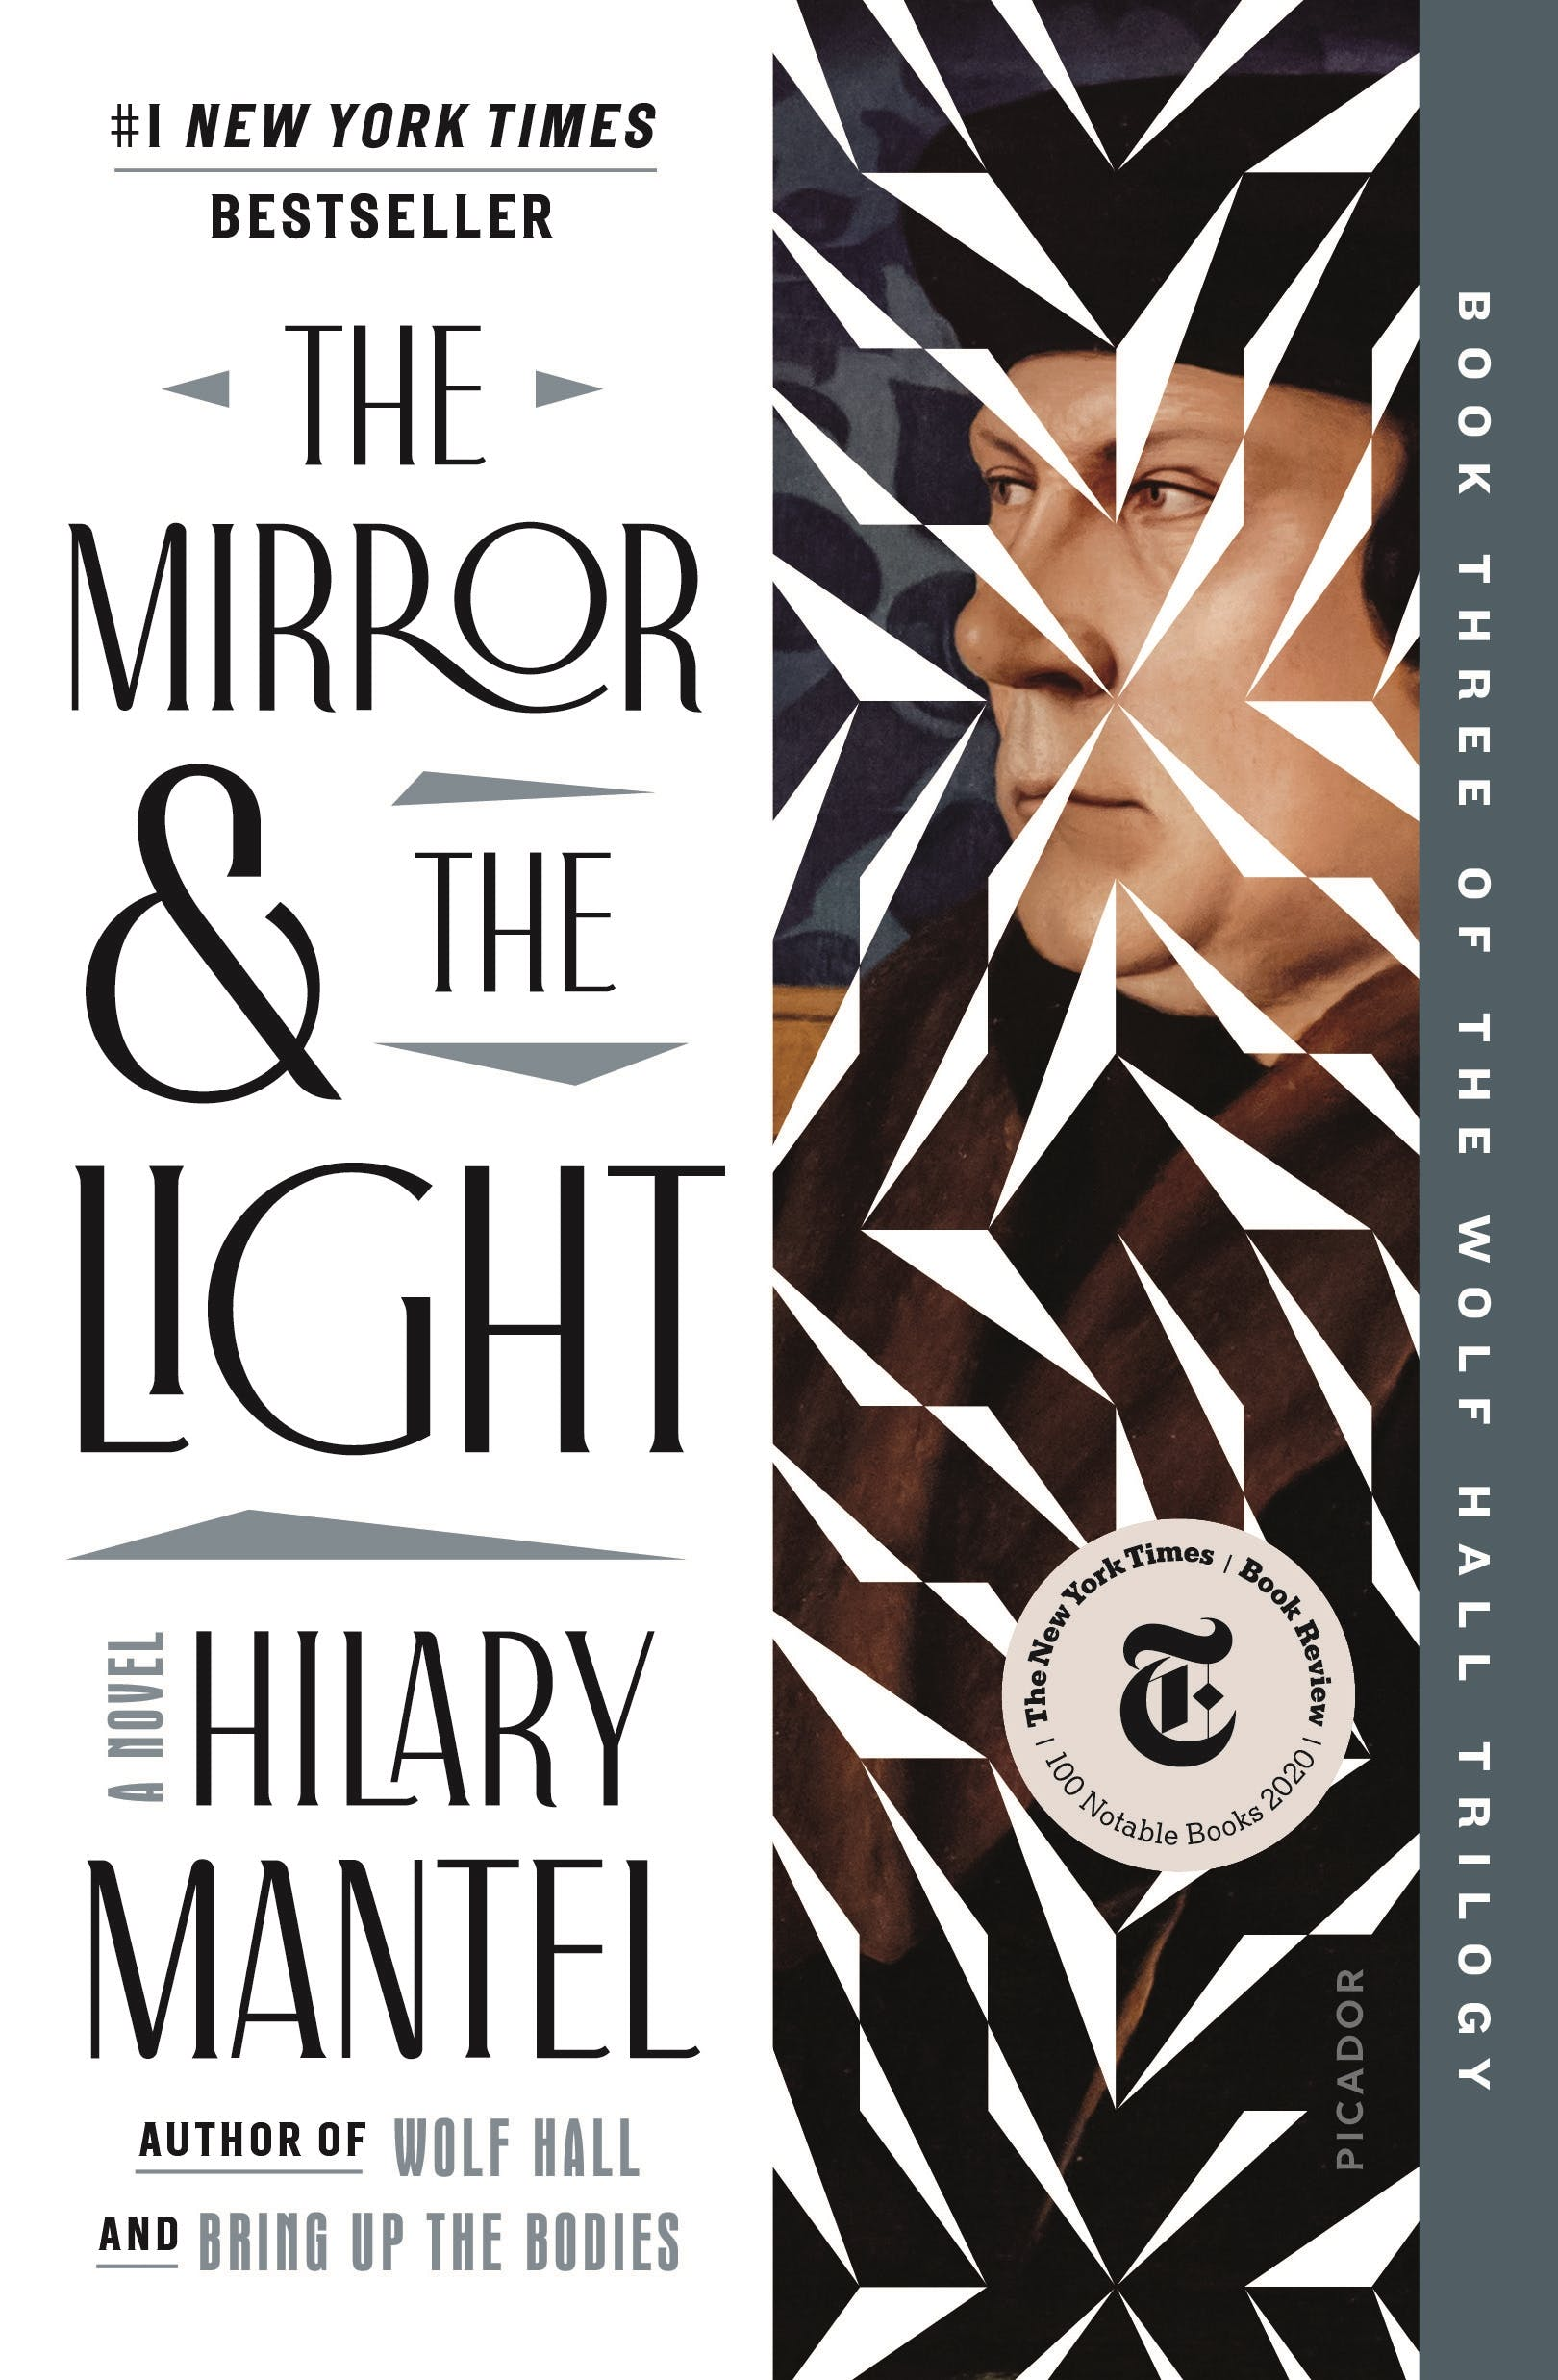 Image of The Mirror & the Light